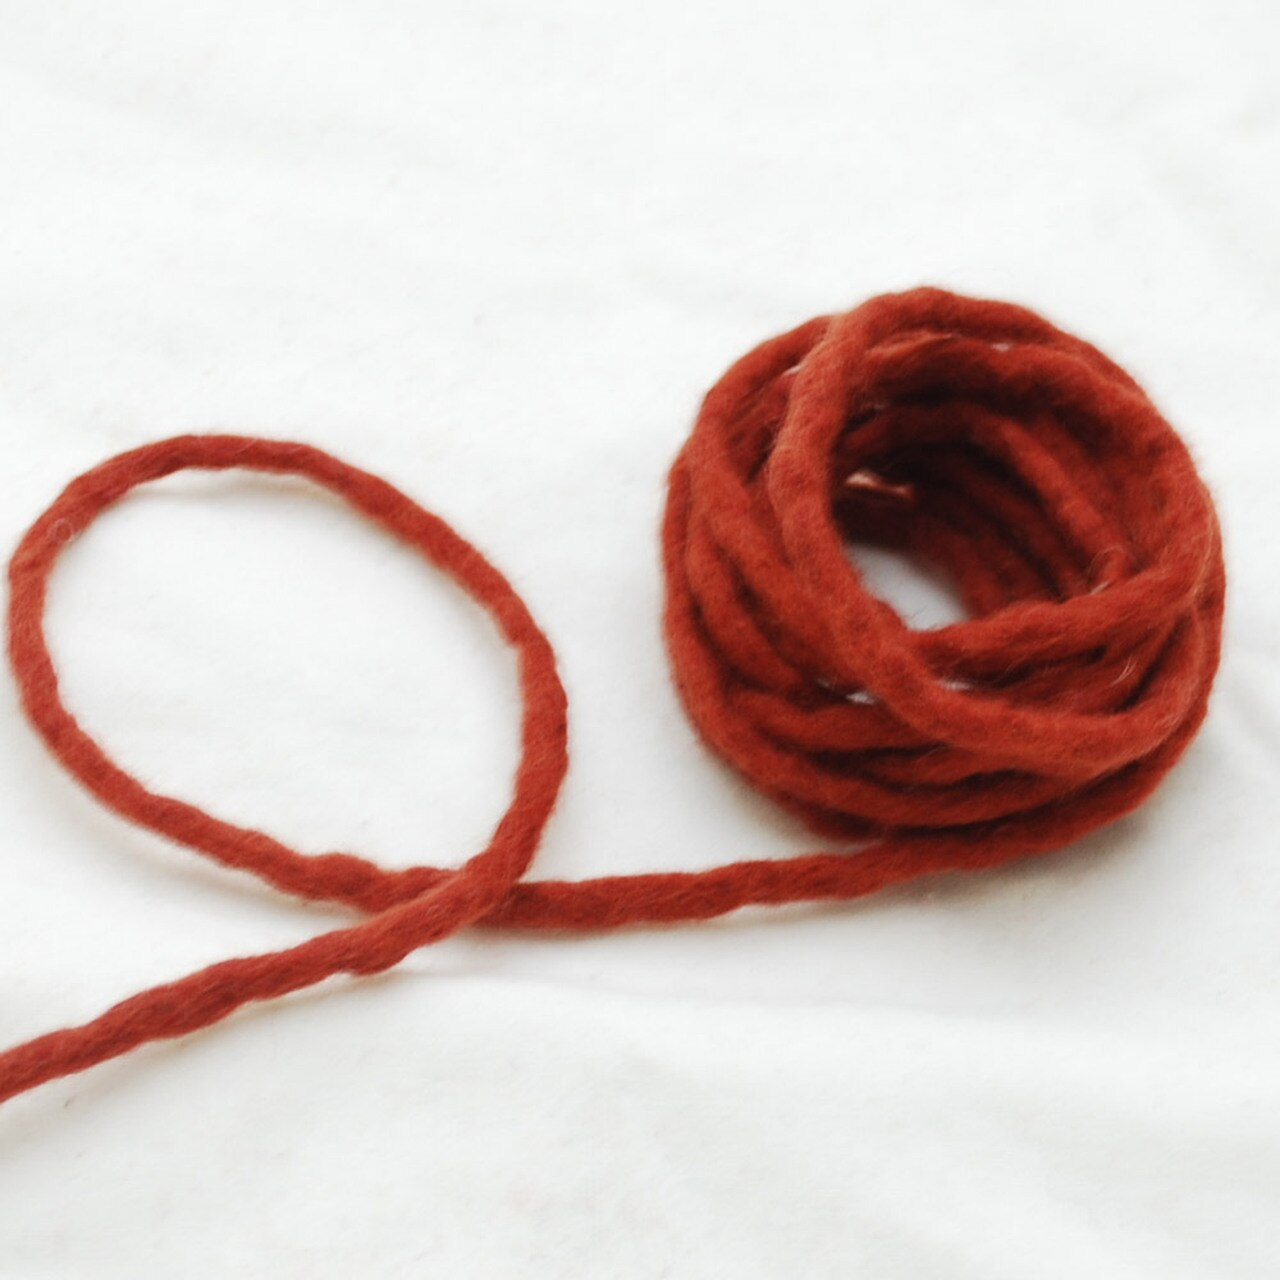 Handmade 100% Wool Felt Cord - Dark Chestnut Red